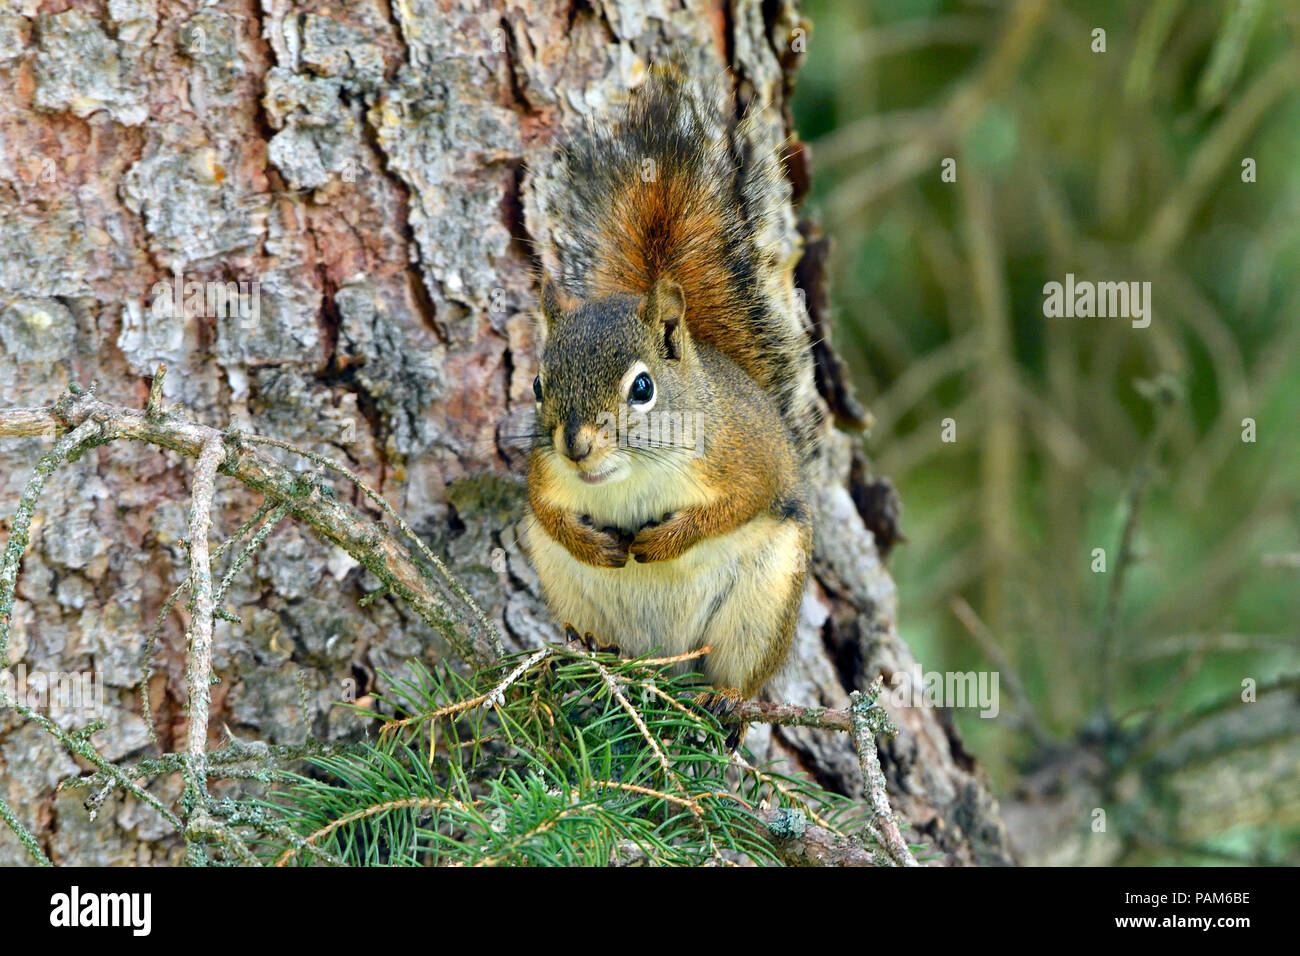 A close up image of a red squirrel 'Tamiasciurus hudsonicus'; sitting on a tree branch - Stock Image